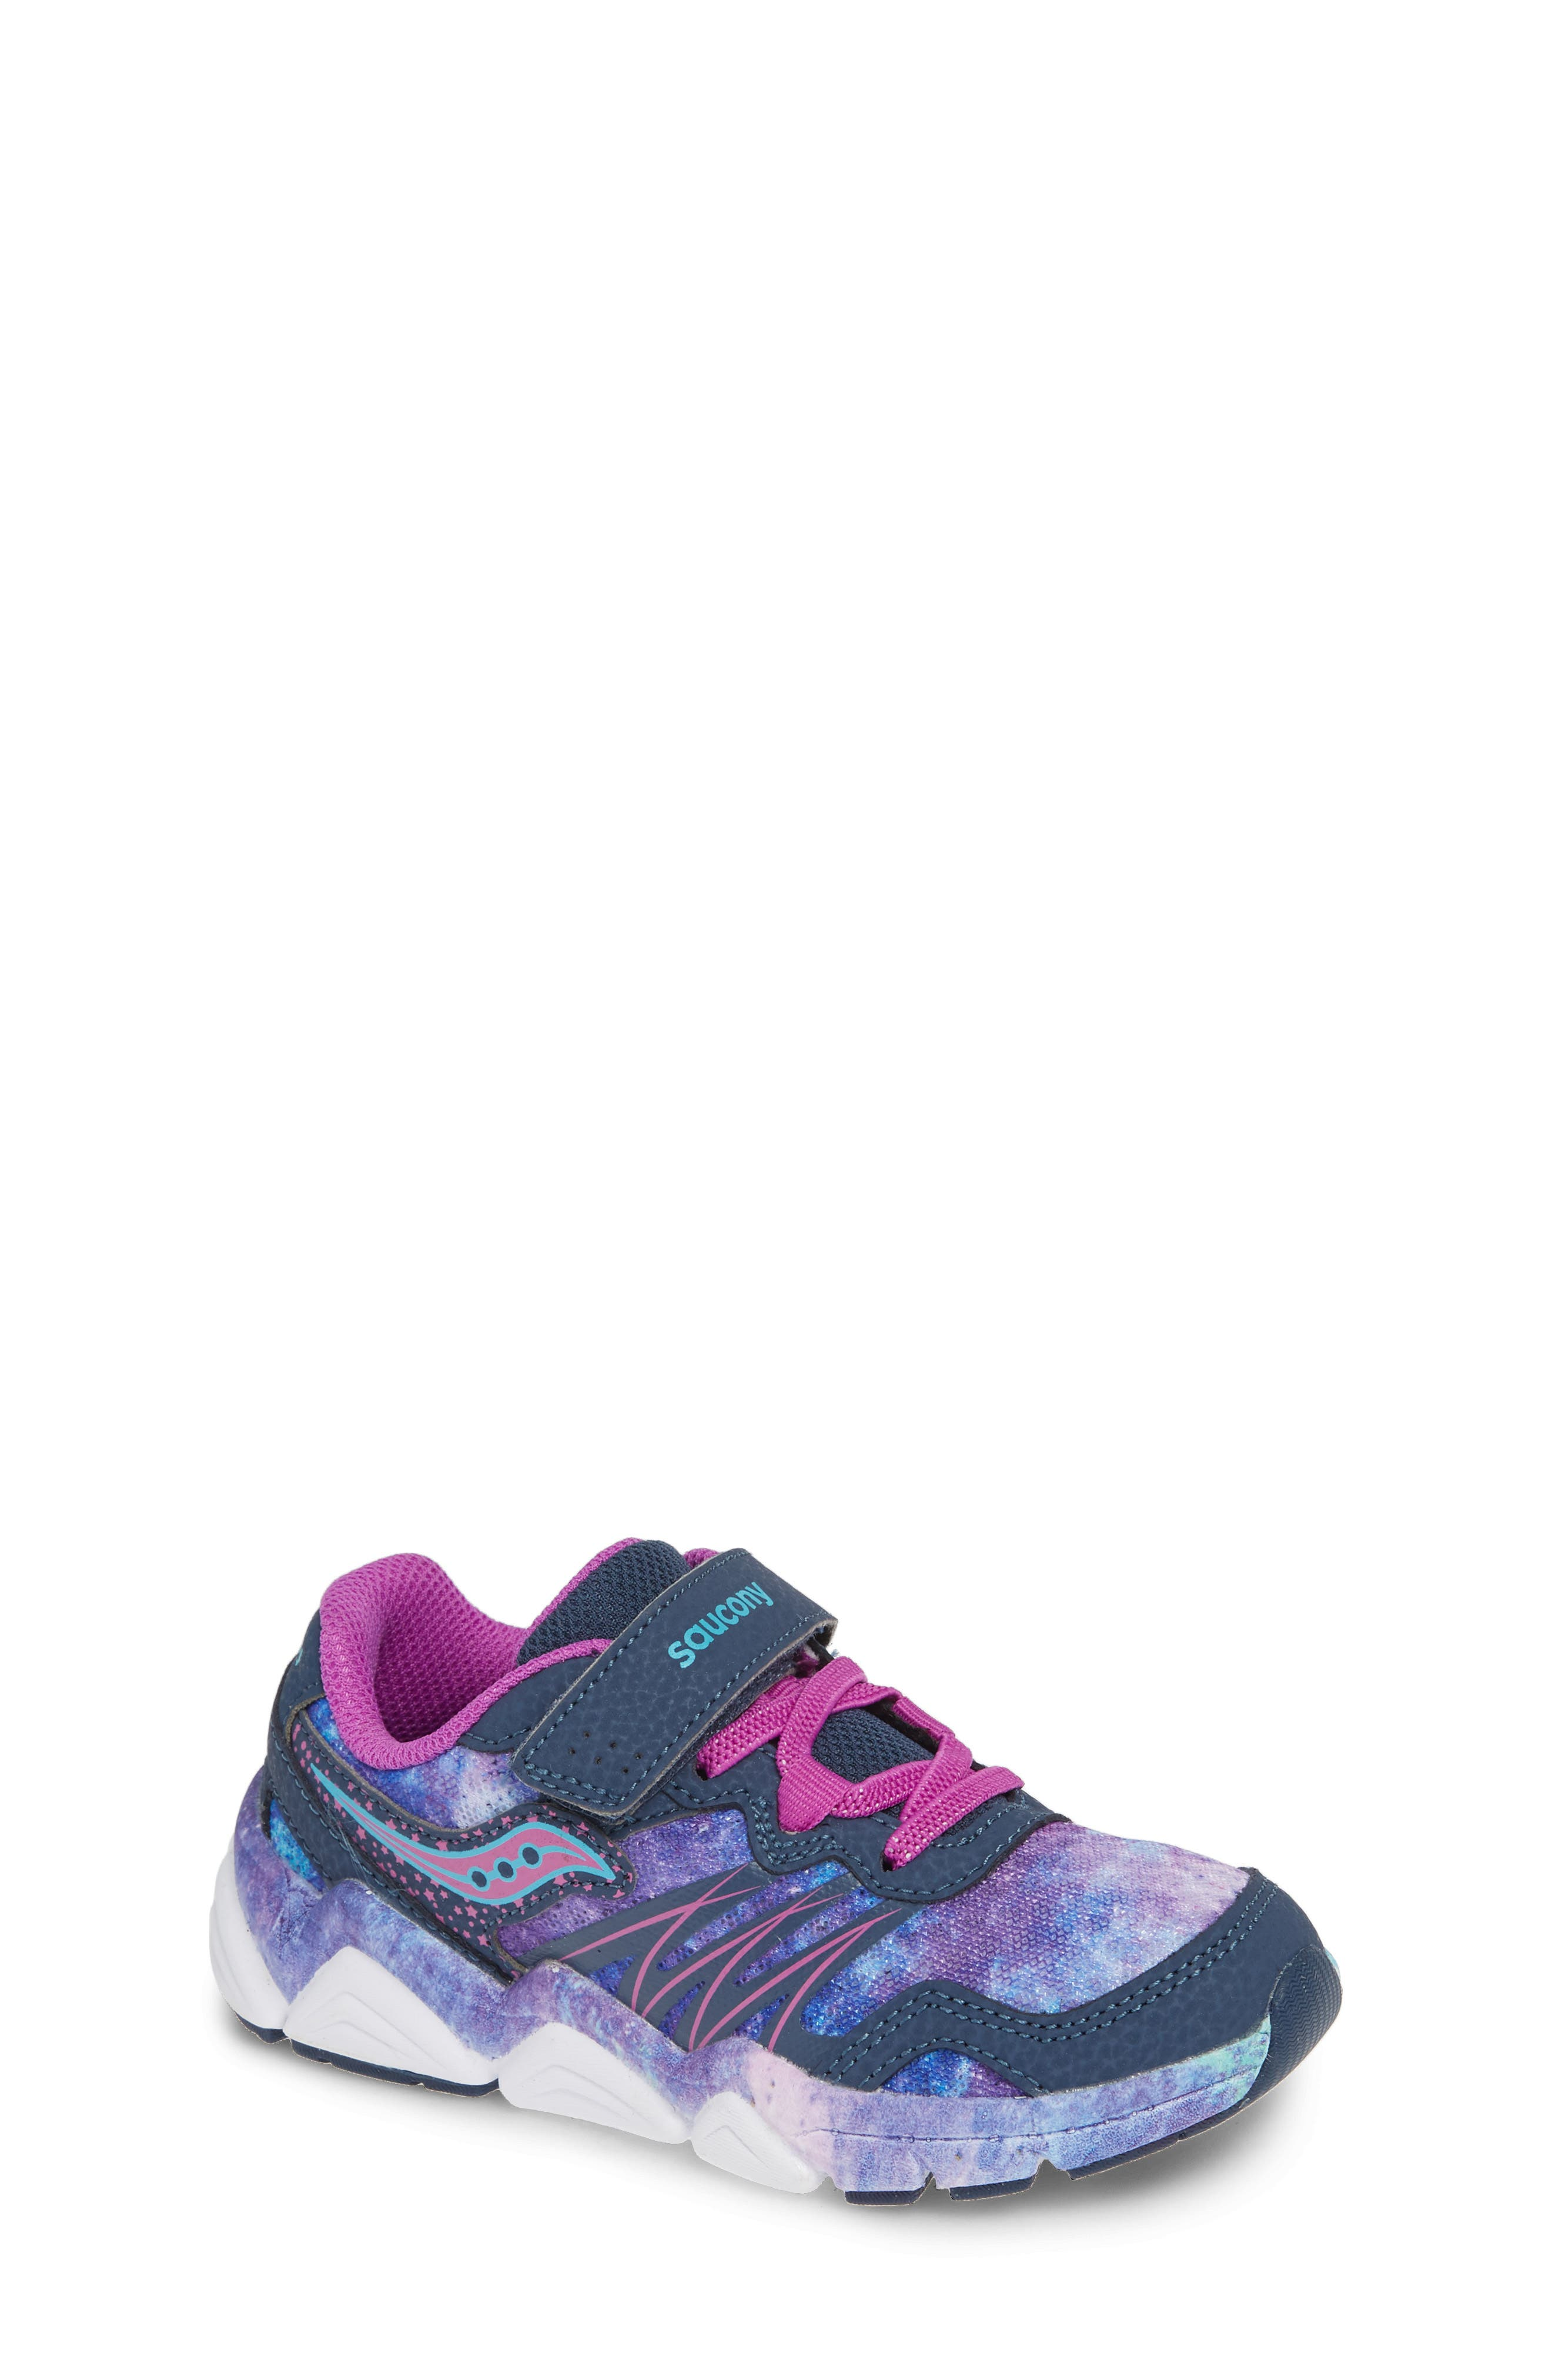 Kotaro Flash Sneaker,                             Main thumbnail 1, color,                             PURPLE LEATHER/ MESH